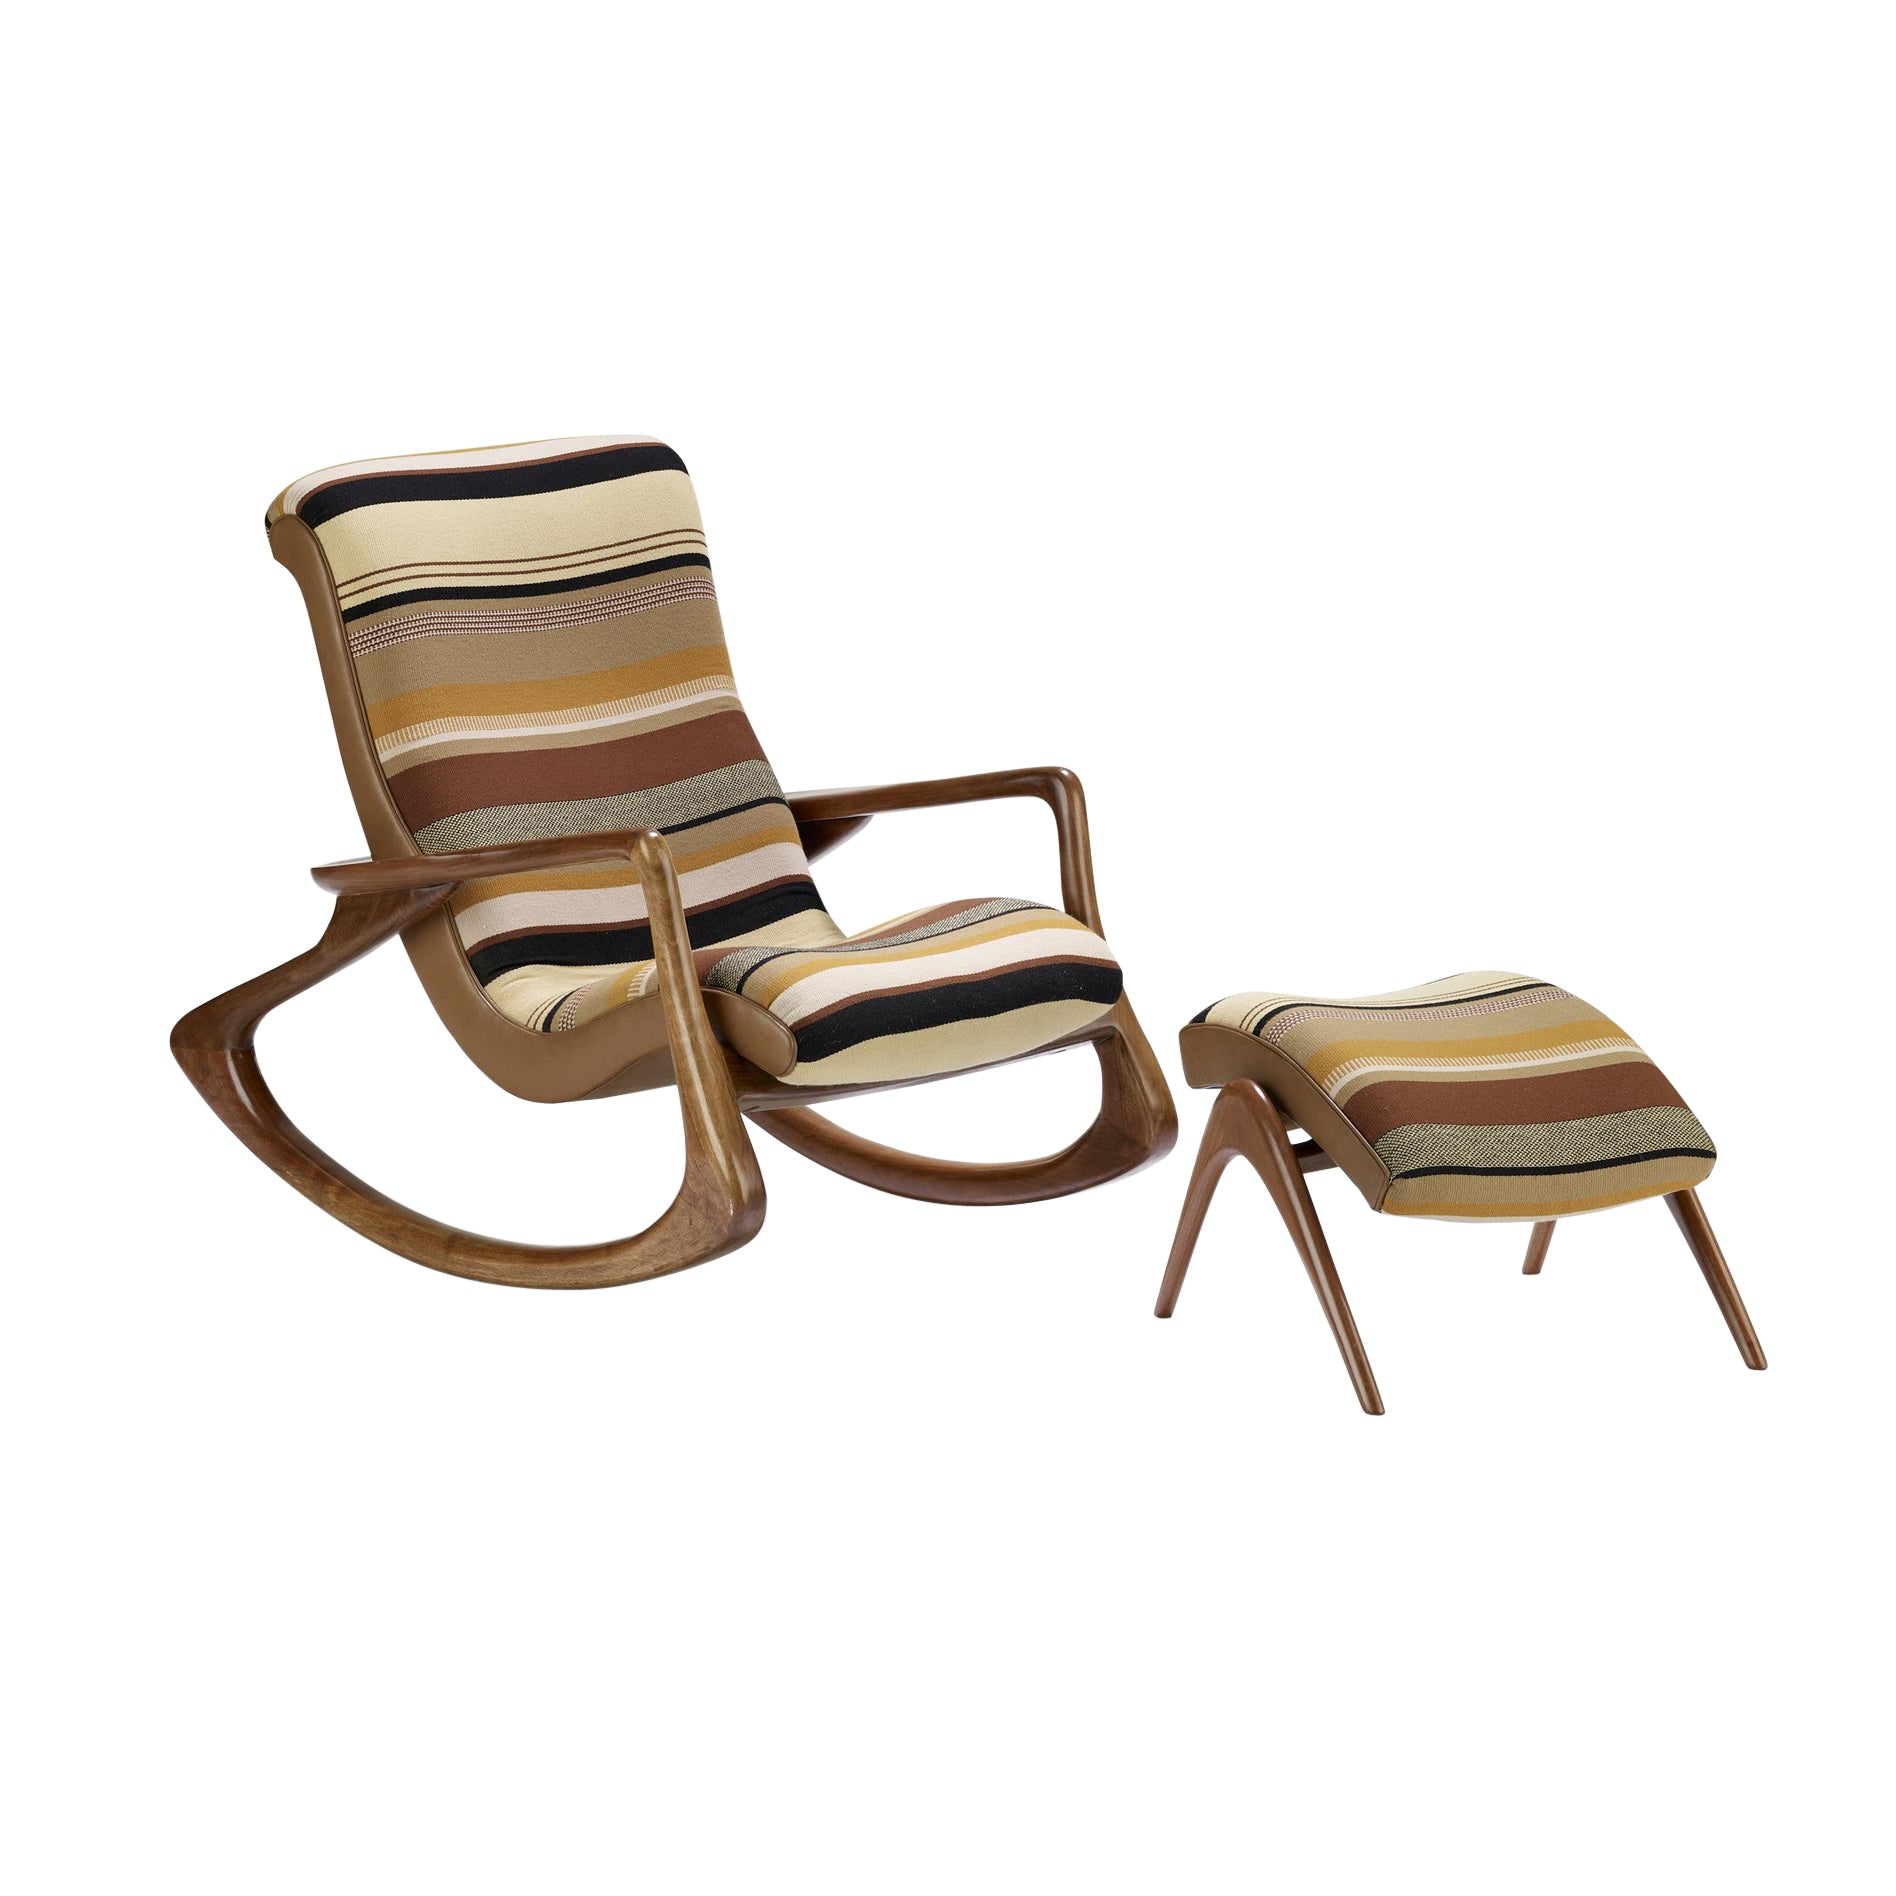 Vladimir Kagan Contour rocking chair and ottoman - The Exchange Int